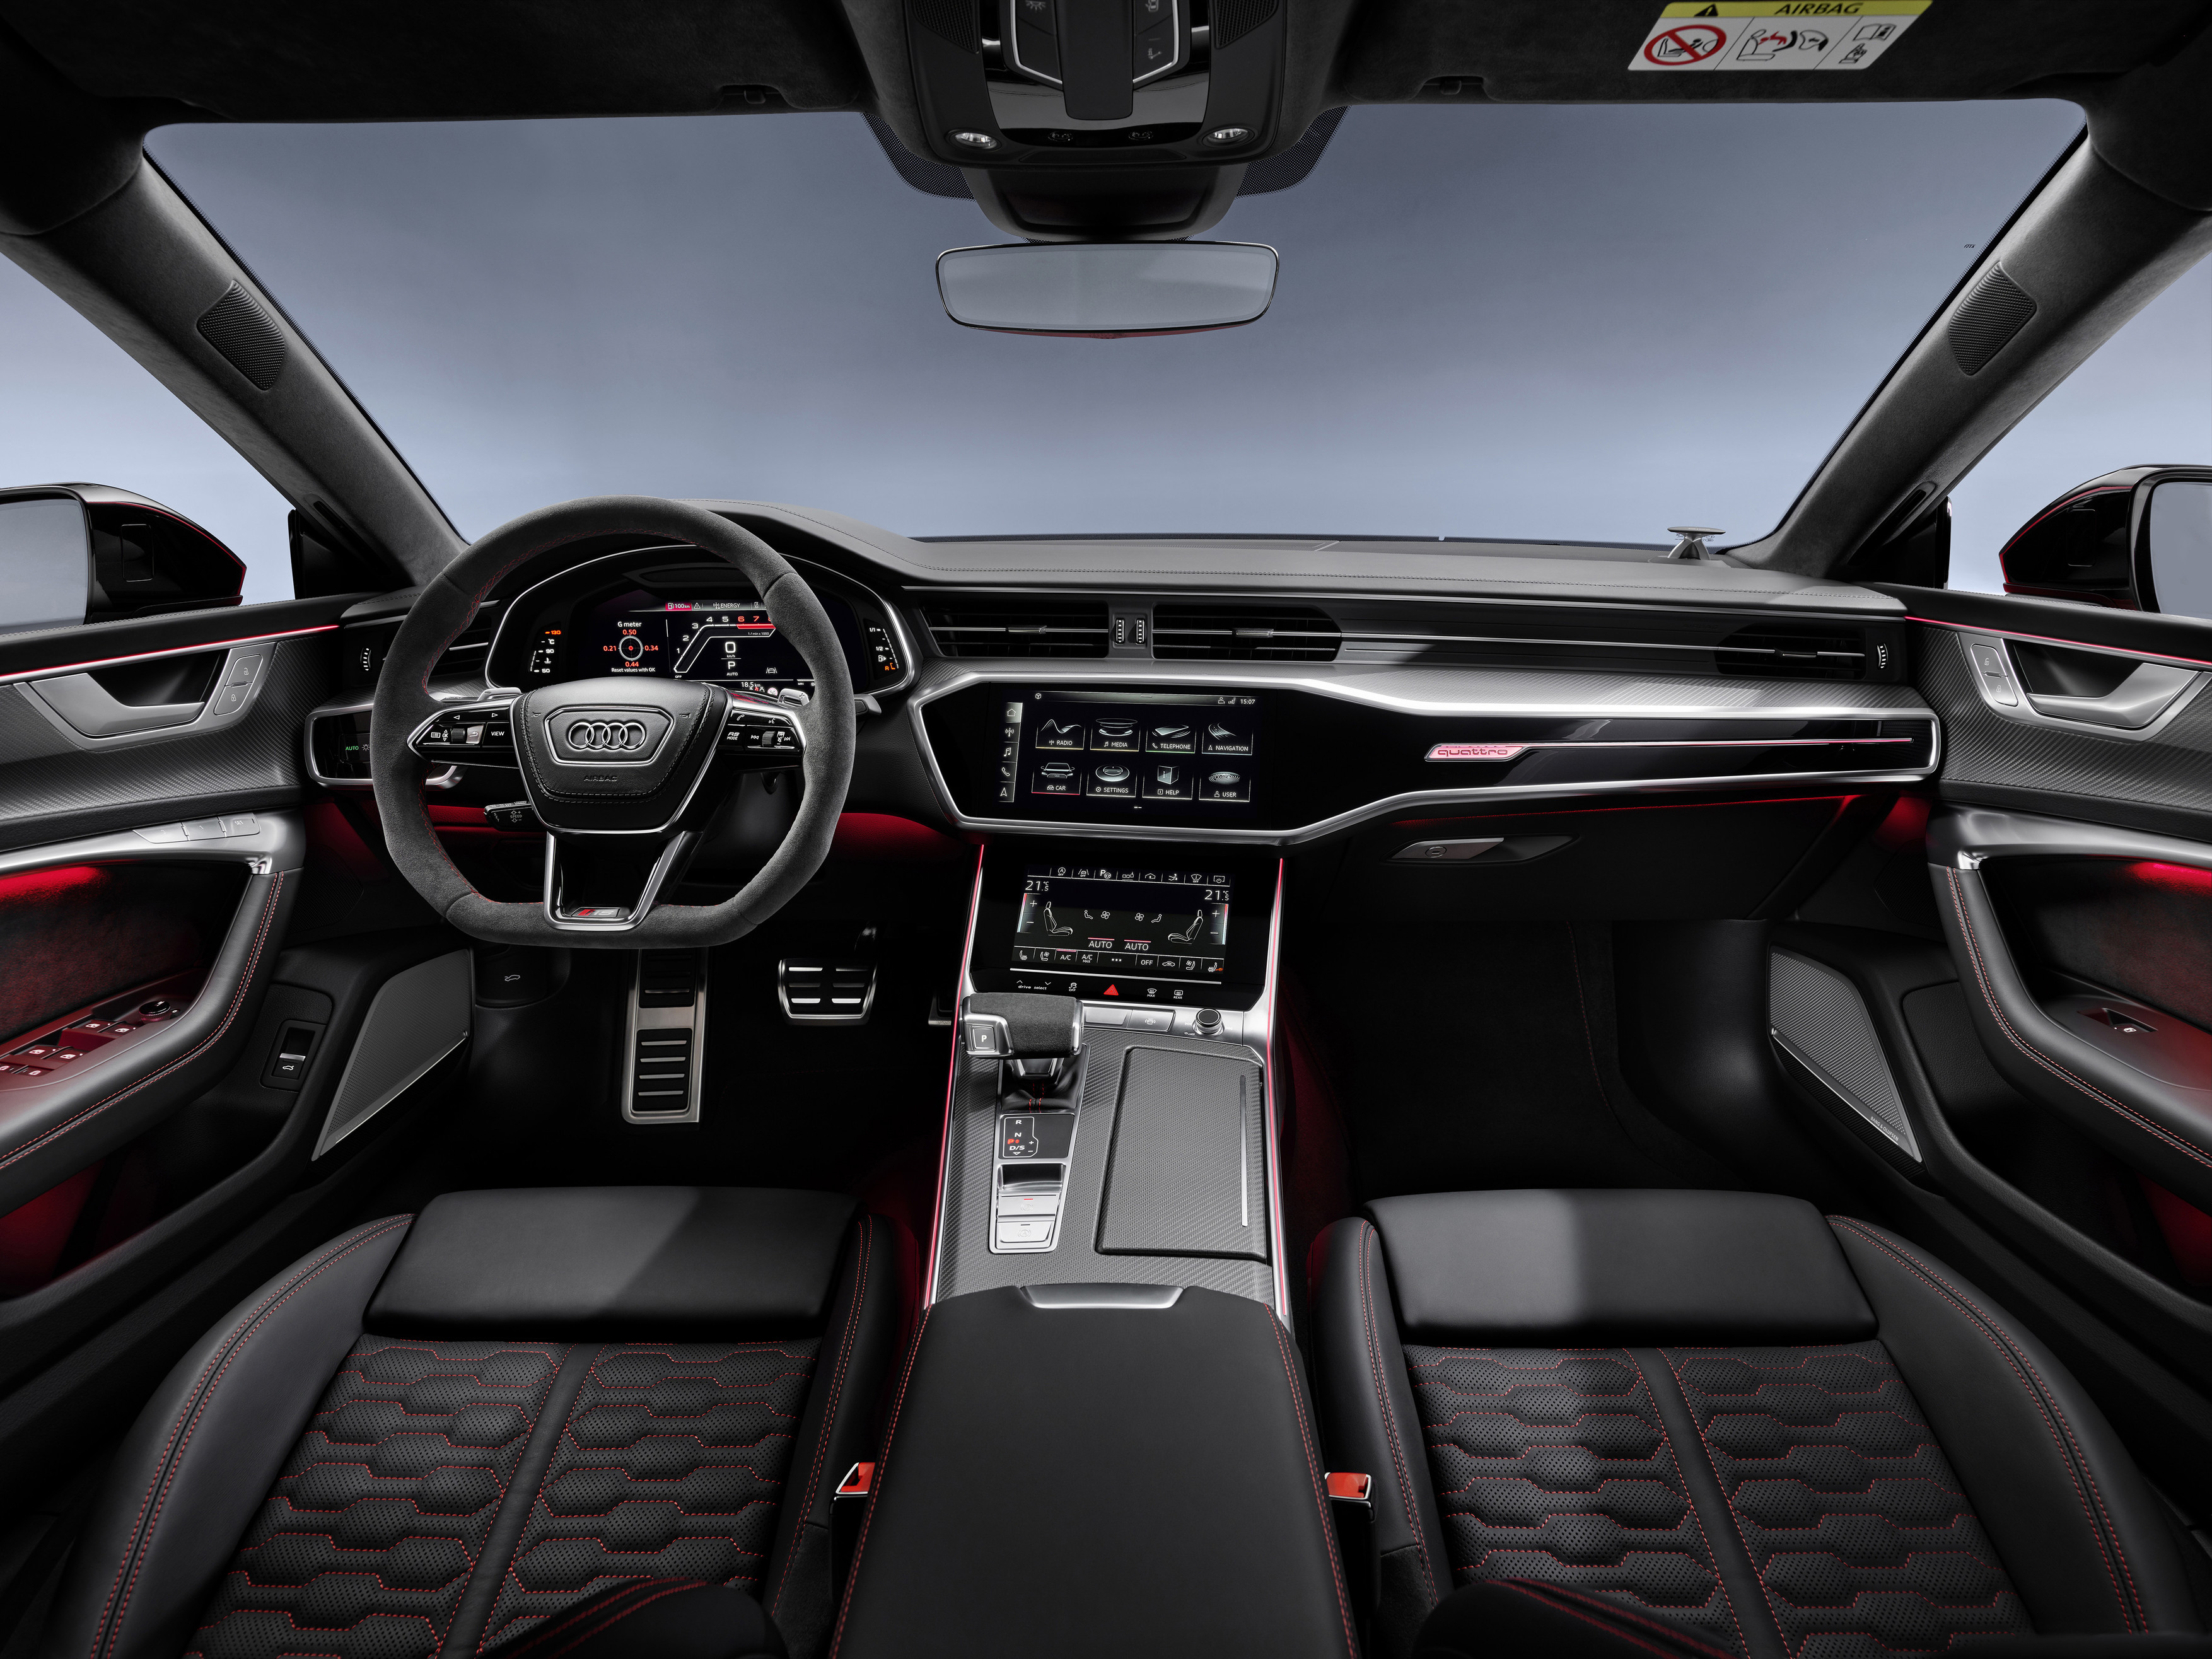 The RS 7's cabin gets sports seats and a flat-bottomed steering wheel